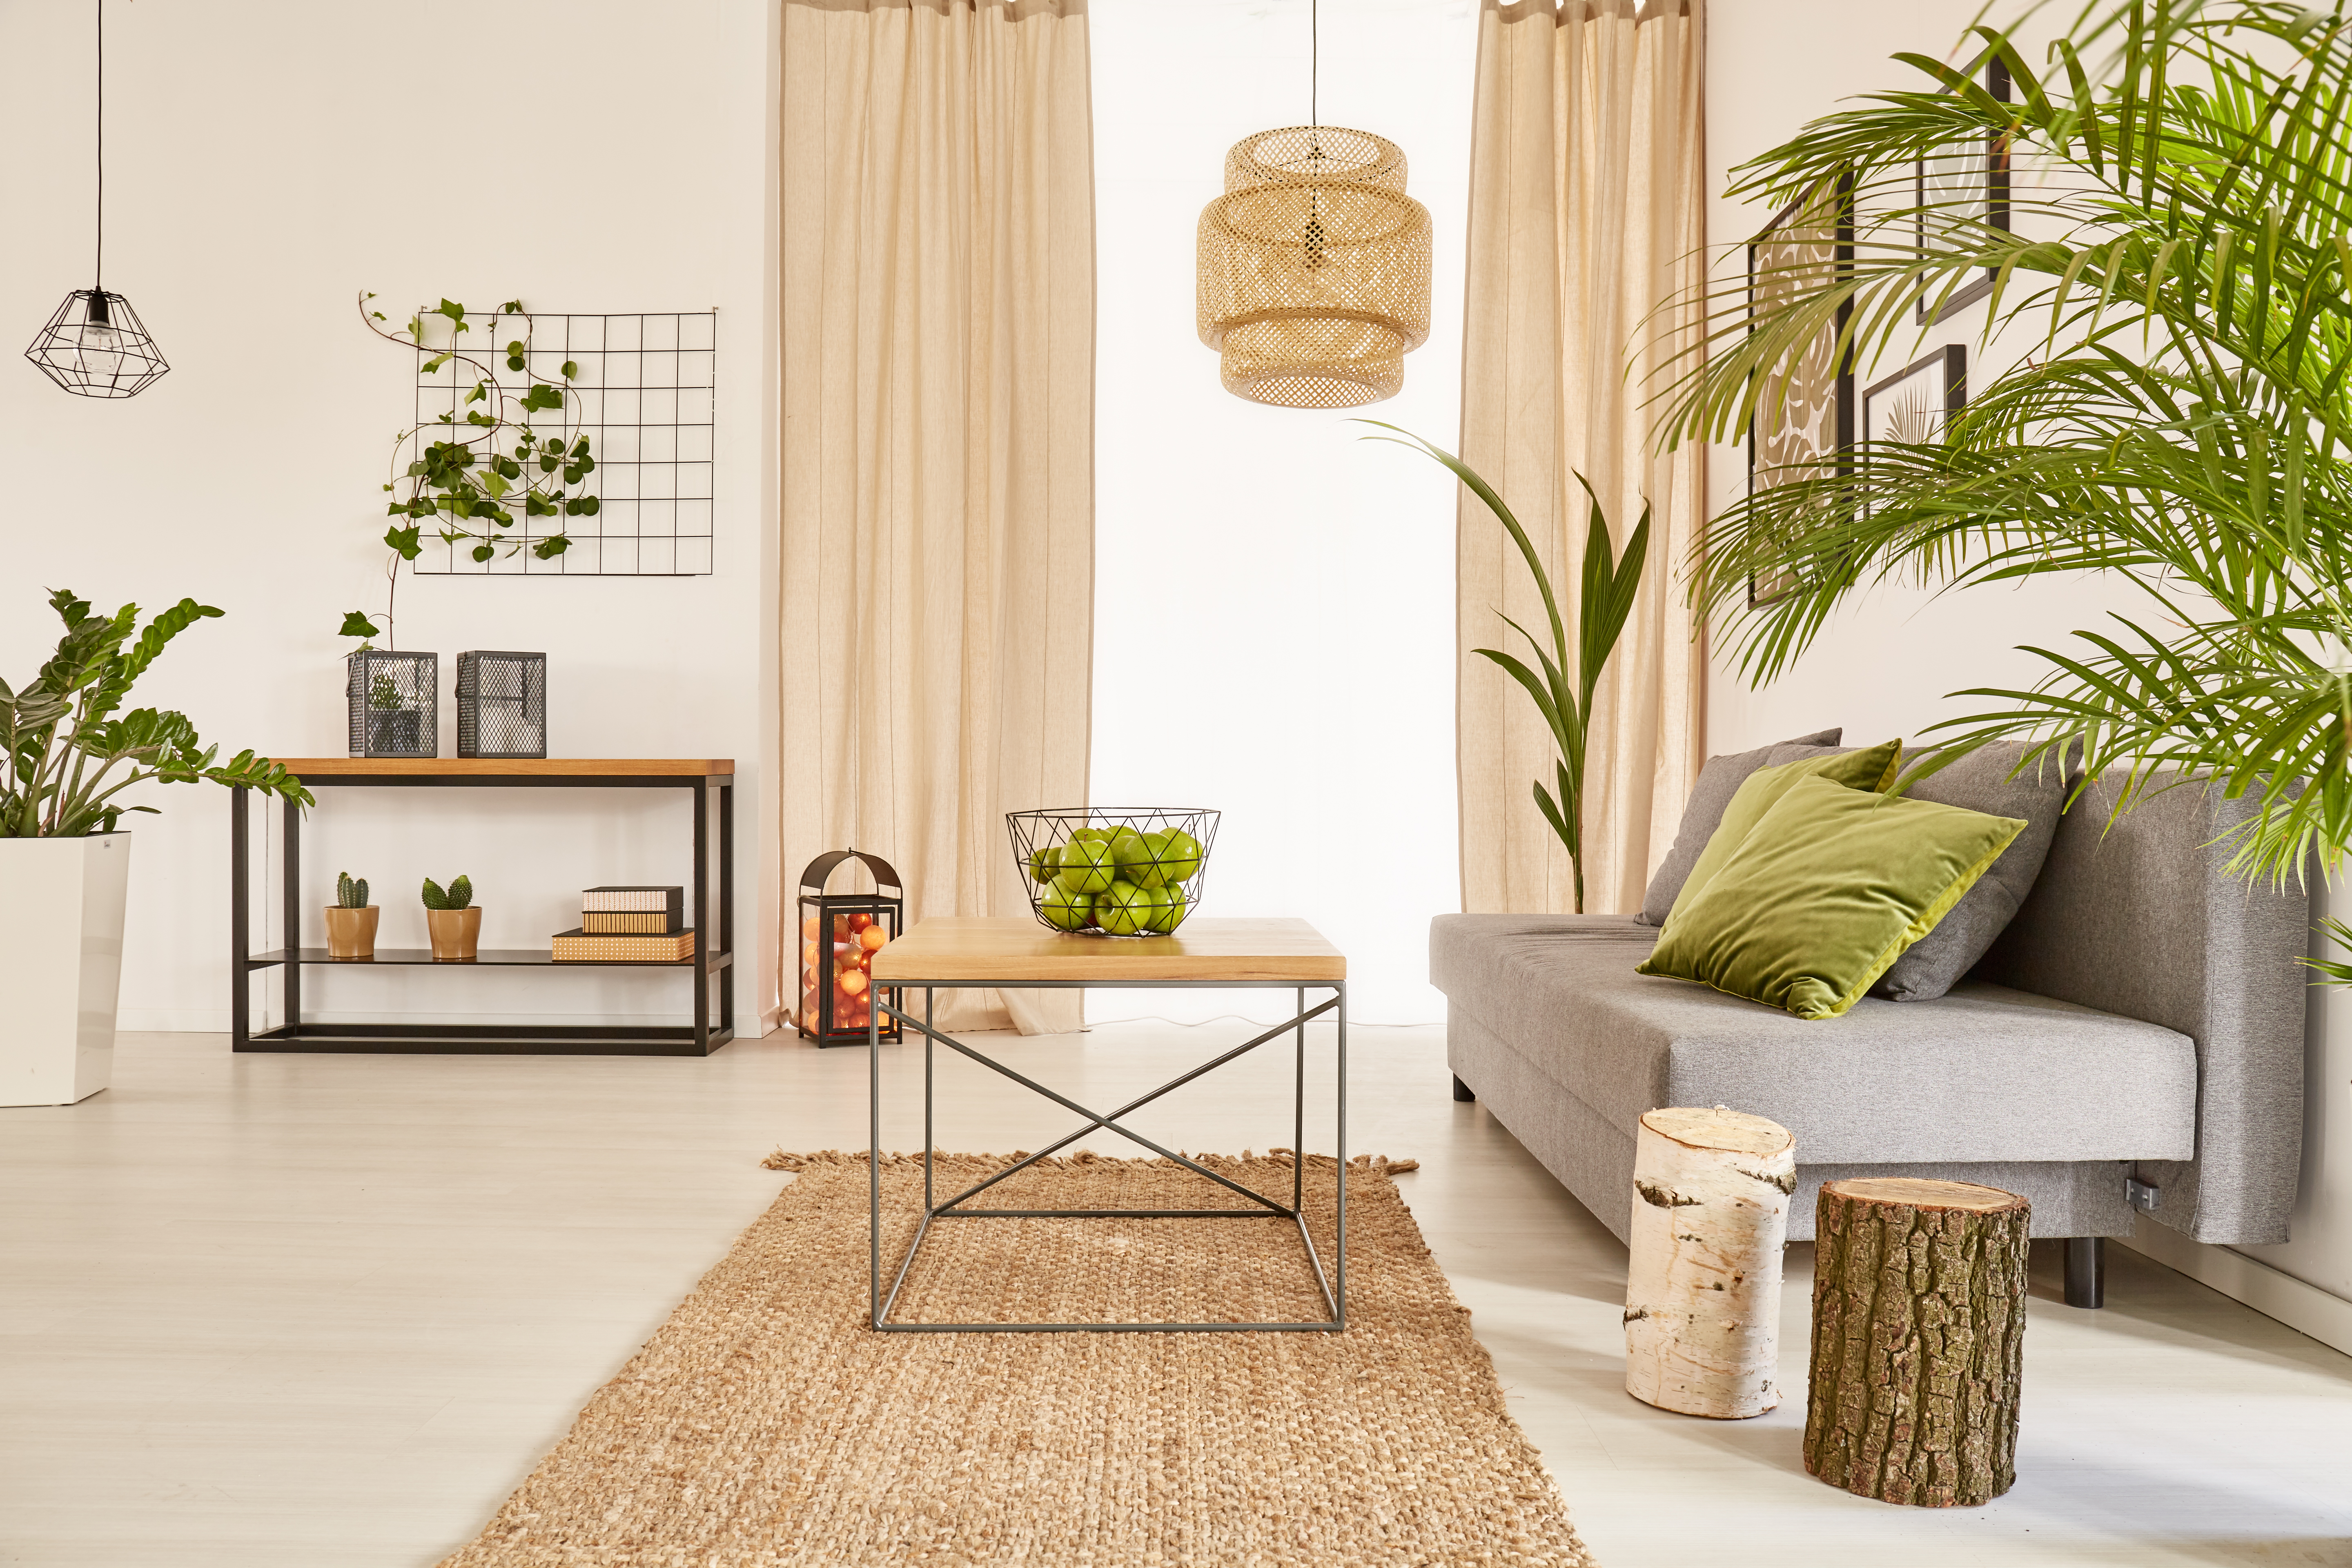 Flat with plants and couch